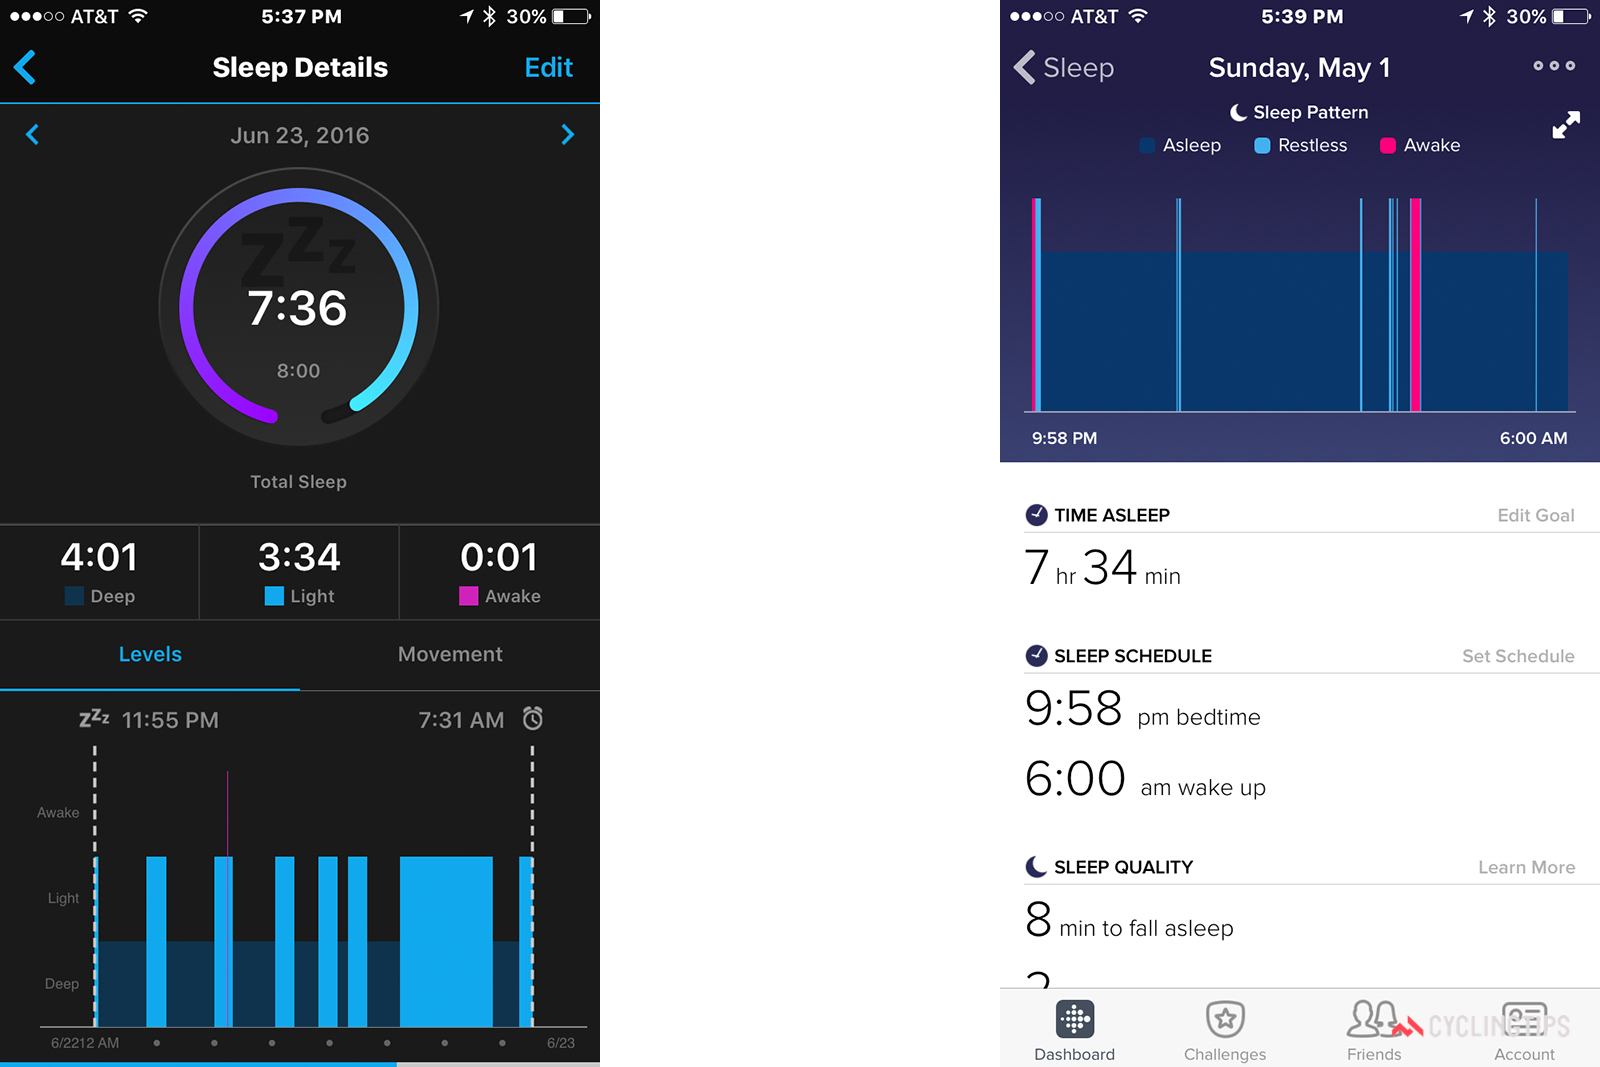 Both devices track your sleep patterns. The information is interesting, but neither app provides any guidance in terms of what you should do with the data.